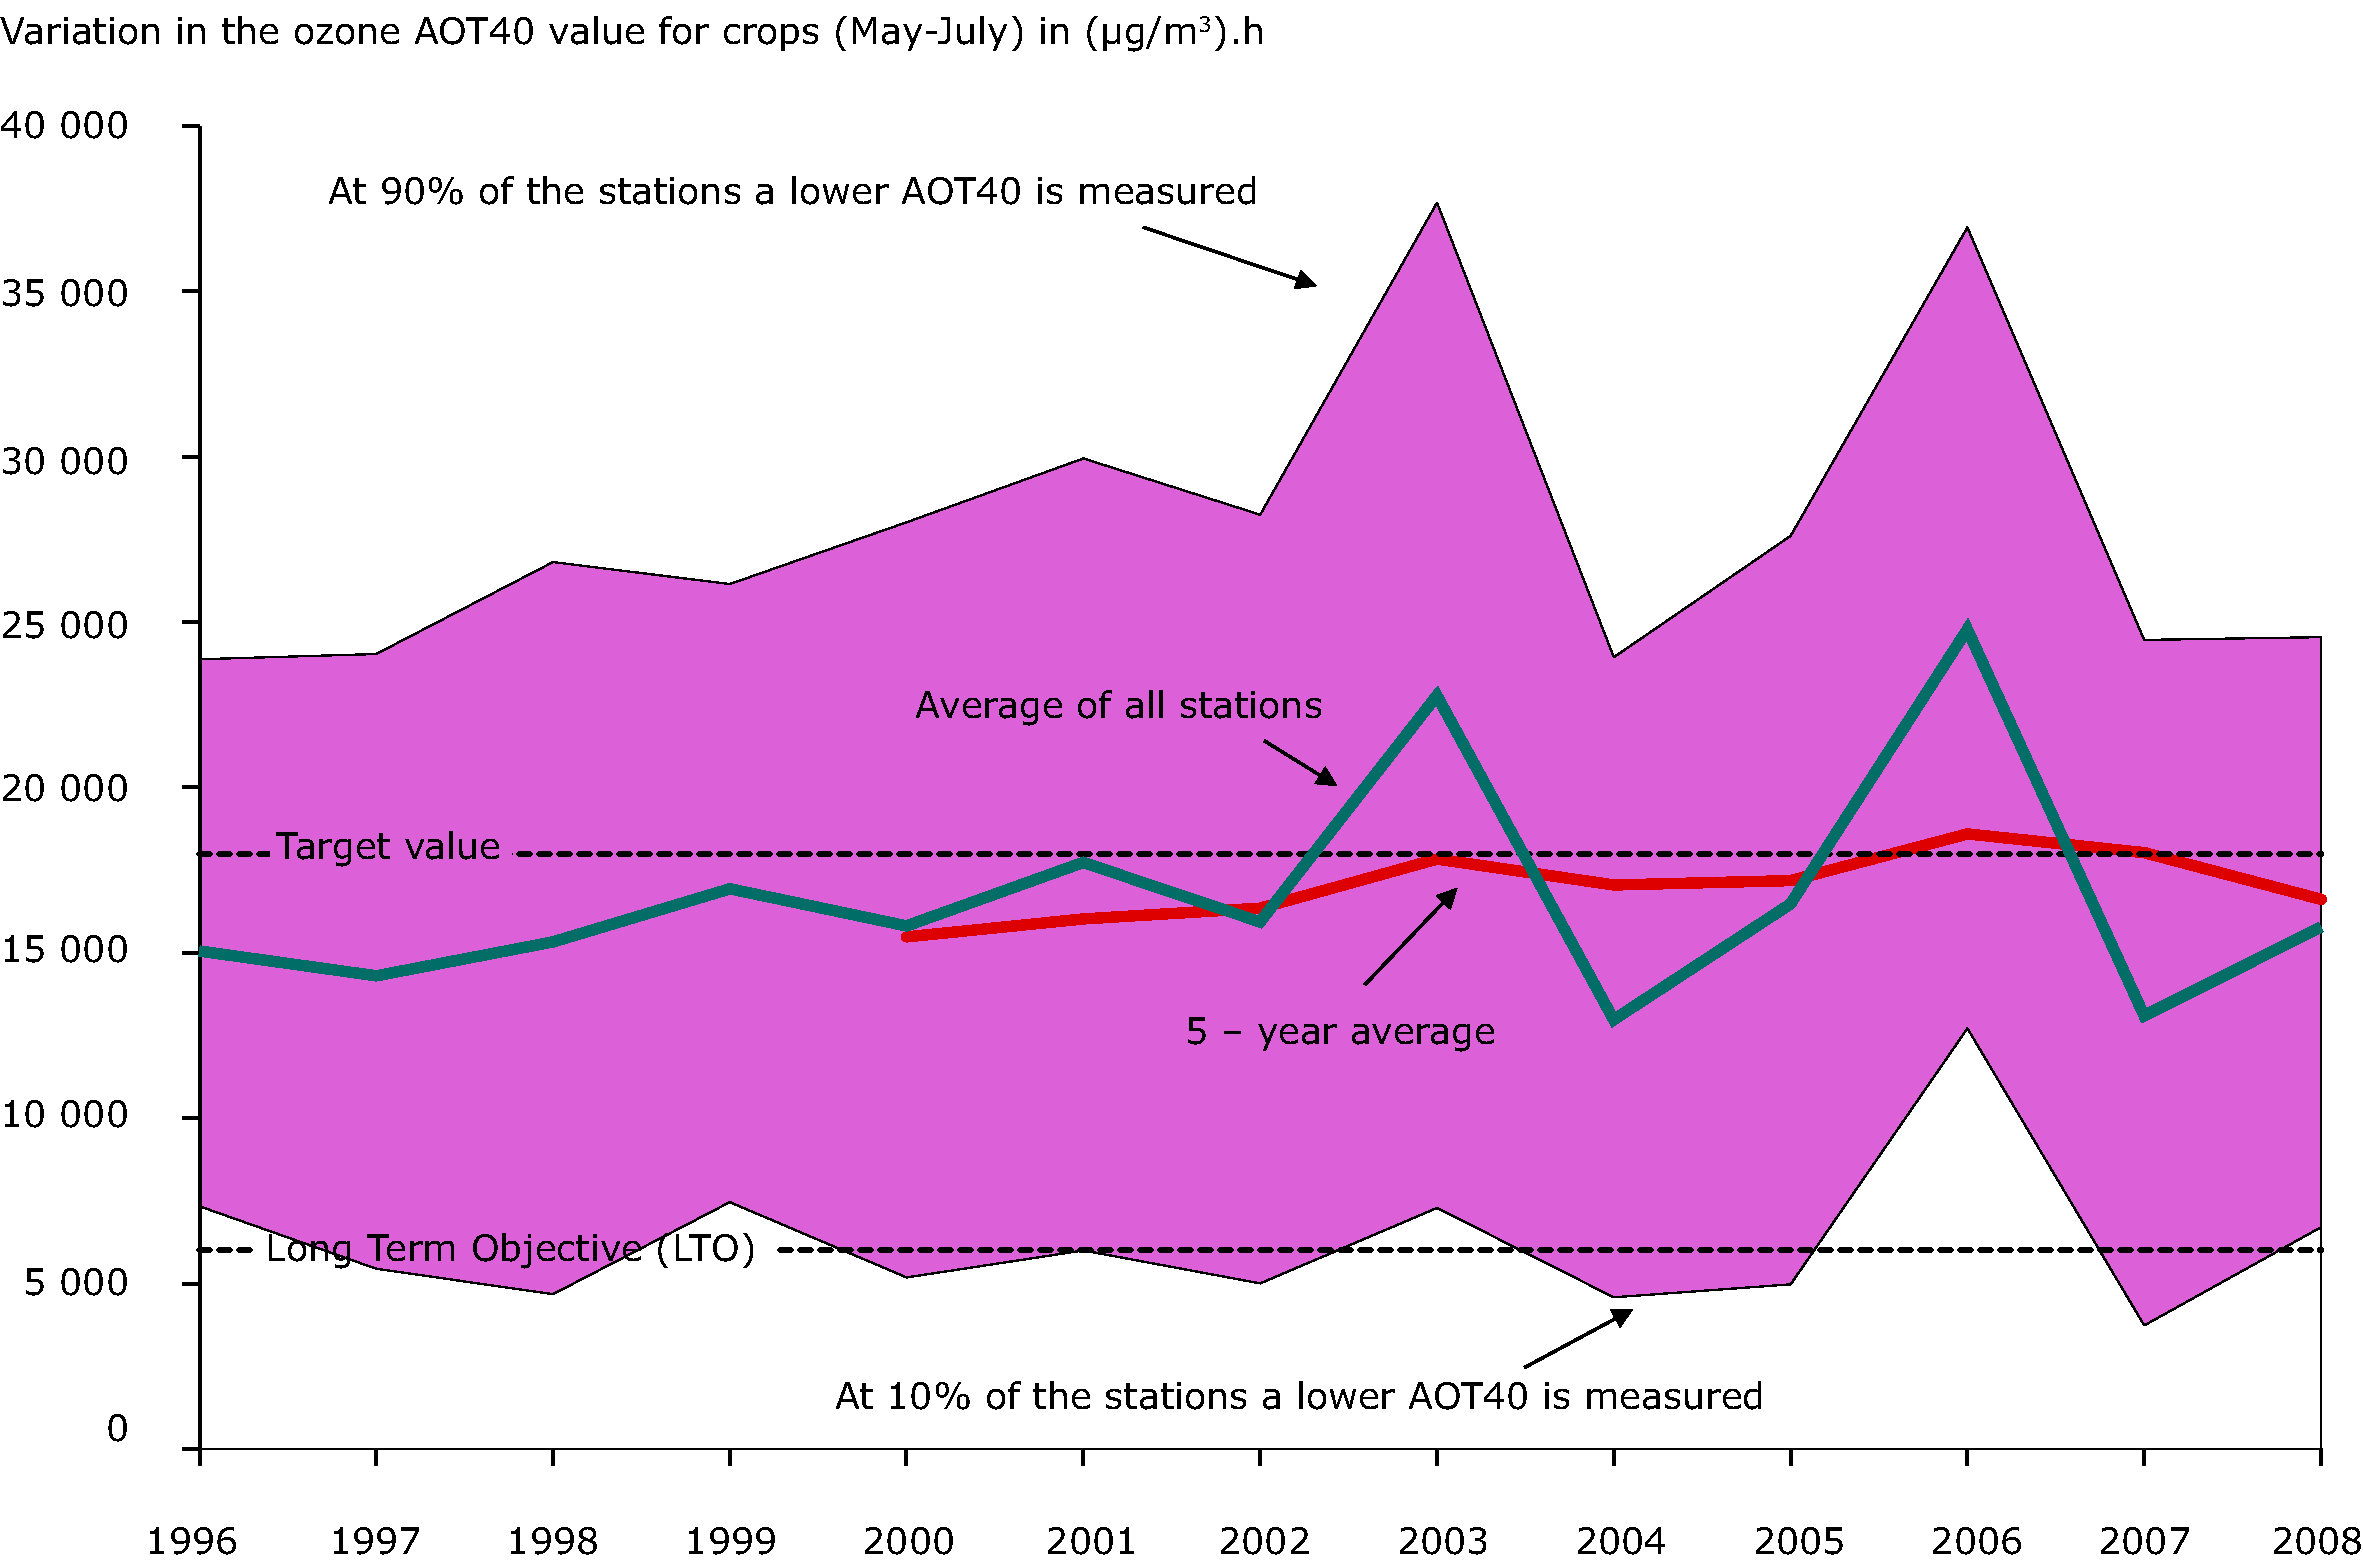 Annual variation in the ozone AOT40 value for crops (May-July) in (μg/m³).h, 1996-2008